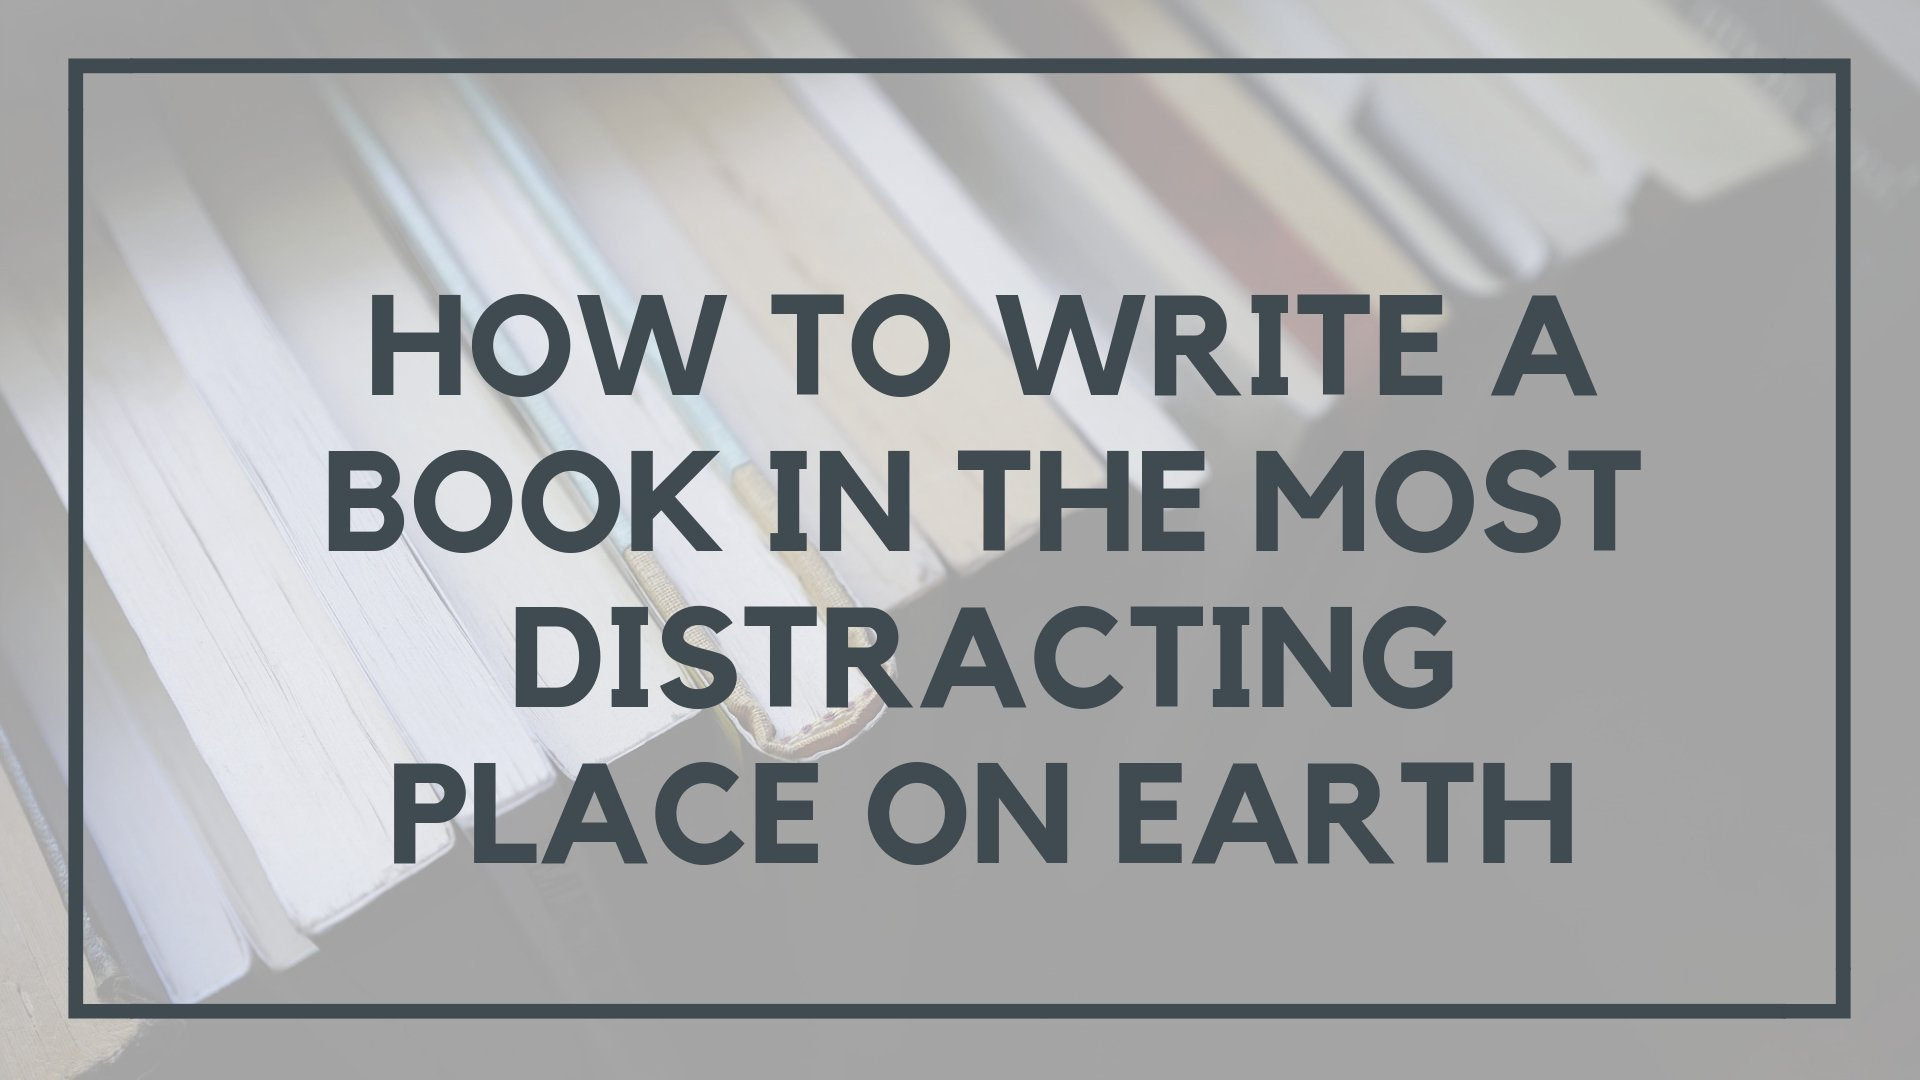 How to Write a Book in the Most Distracting Place on Earth